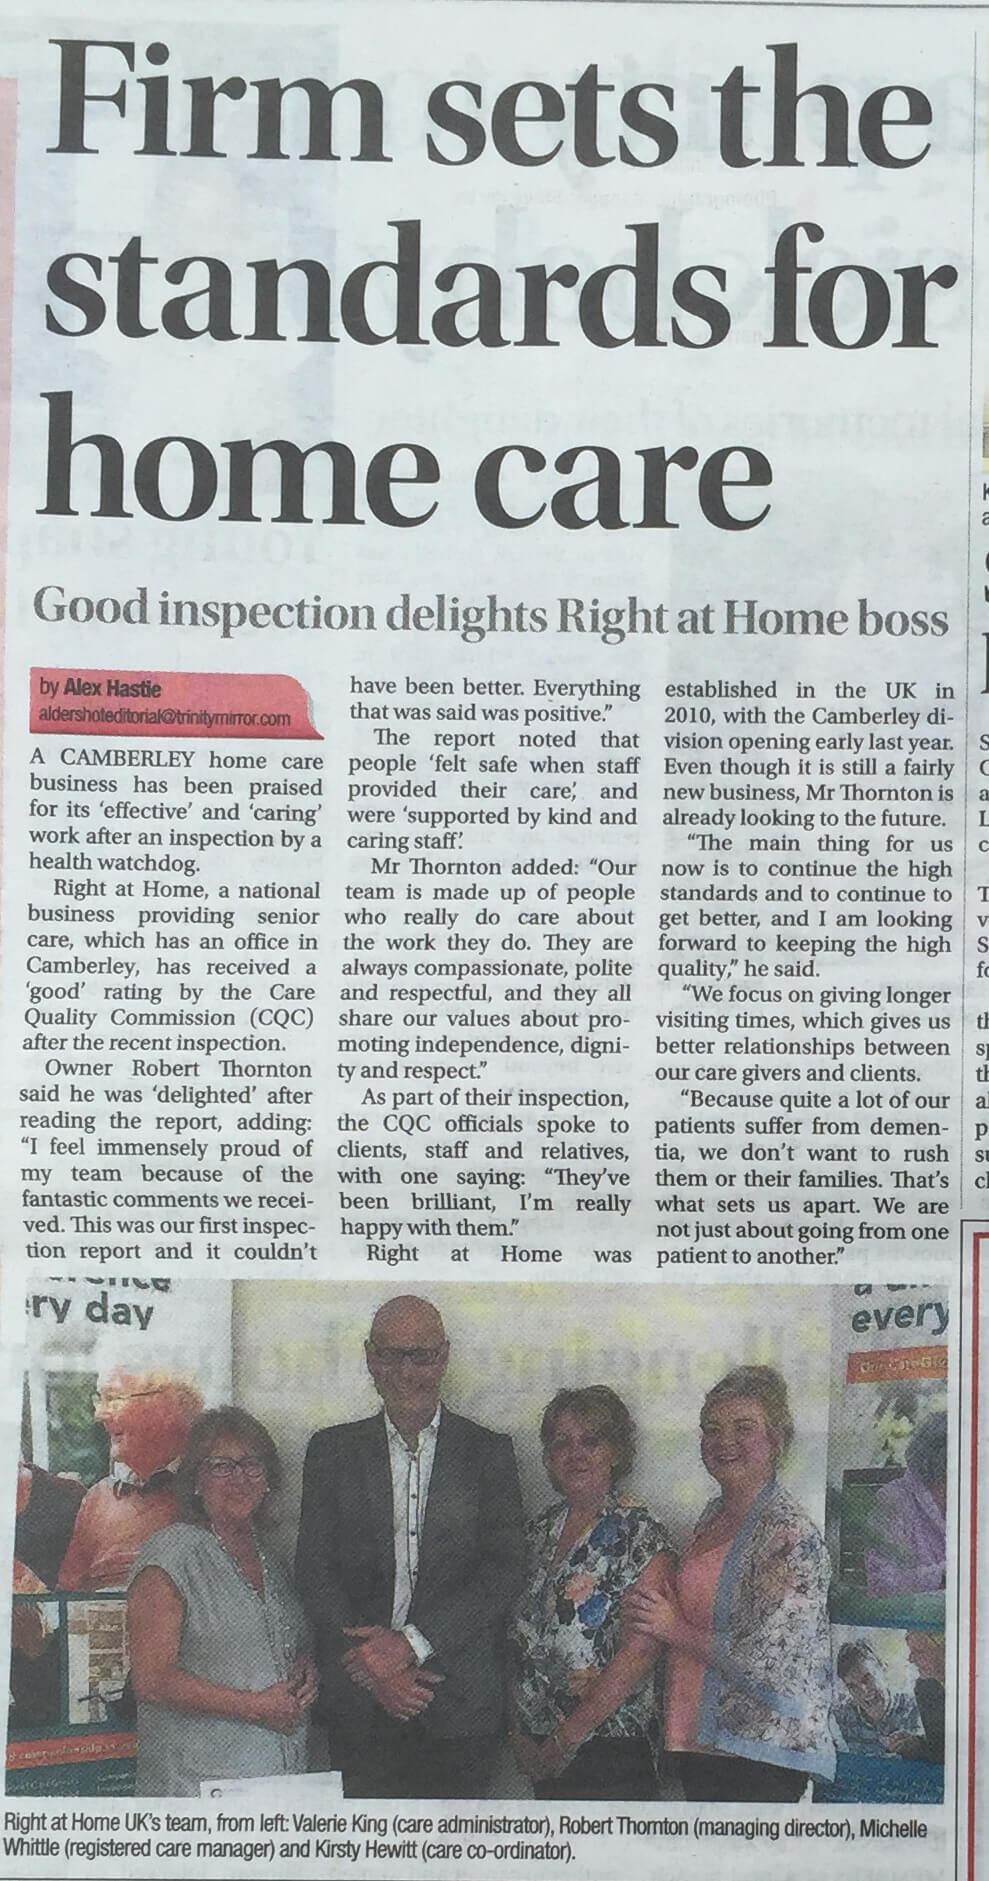 Firm sets the standards for home care